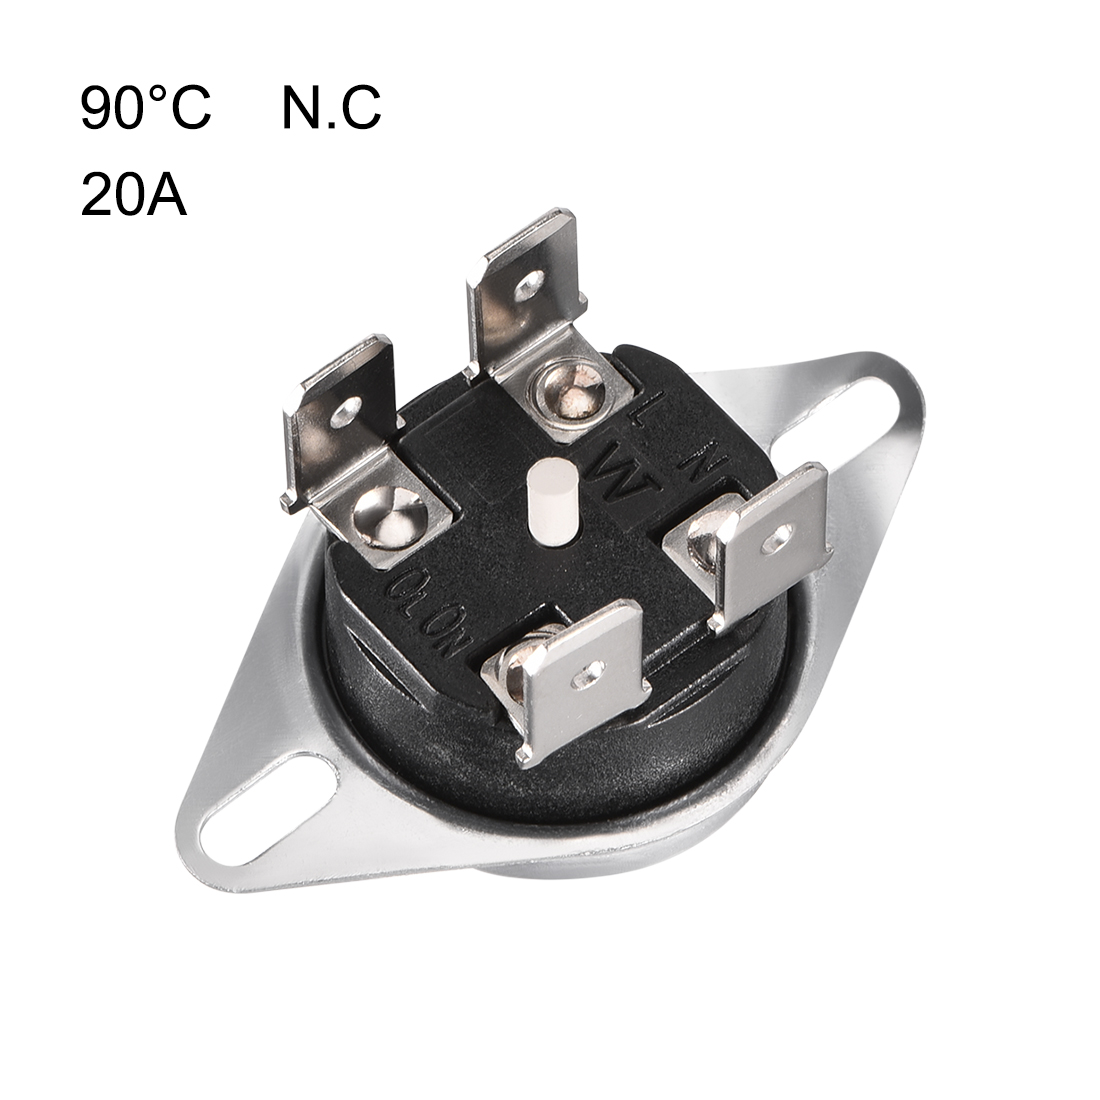 KSD302T Thermostat, Temperature Control Switch 90掳C Manual Reset N.C 6.3mm Pin - image 1 de 3